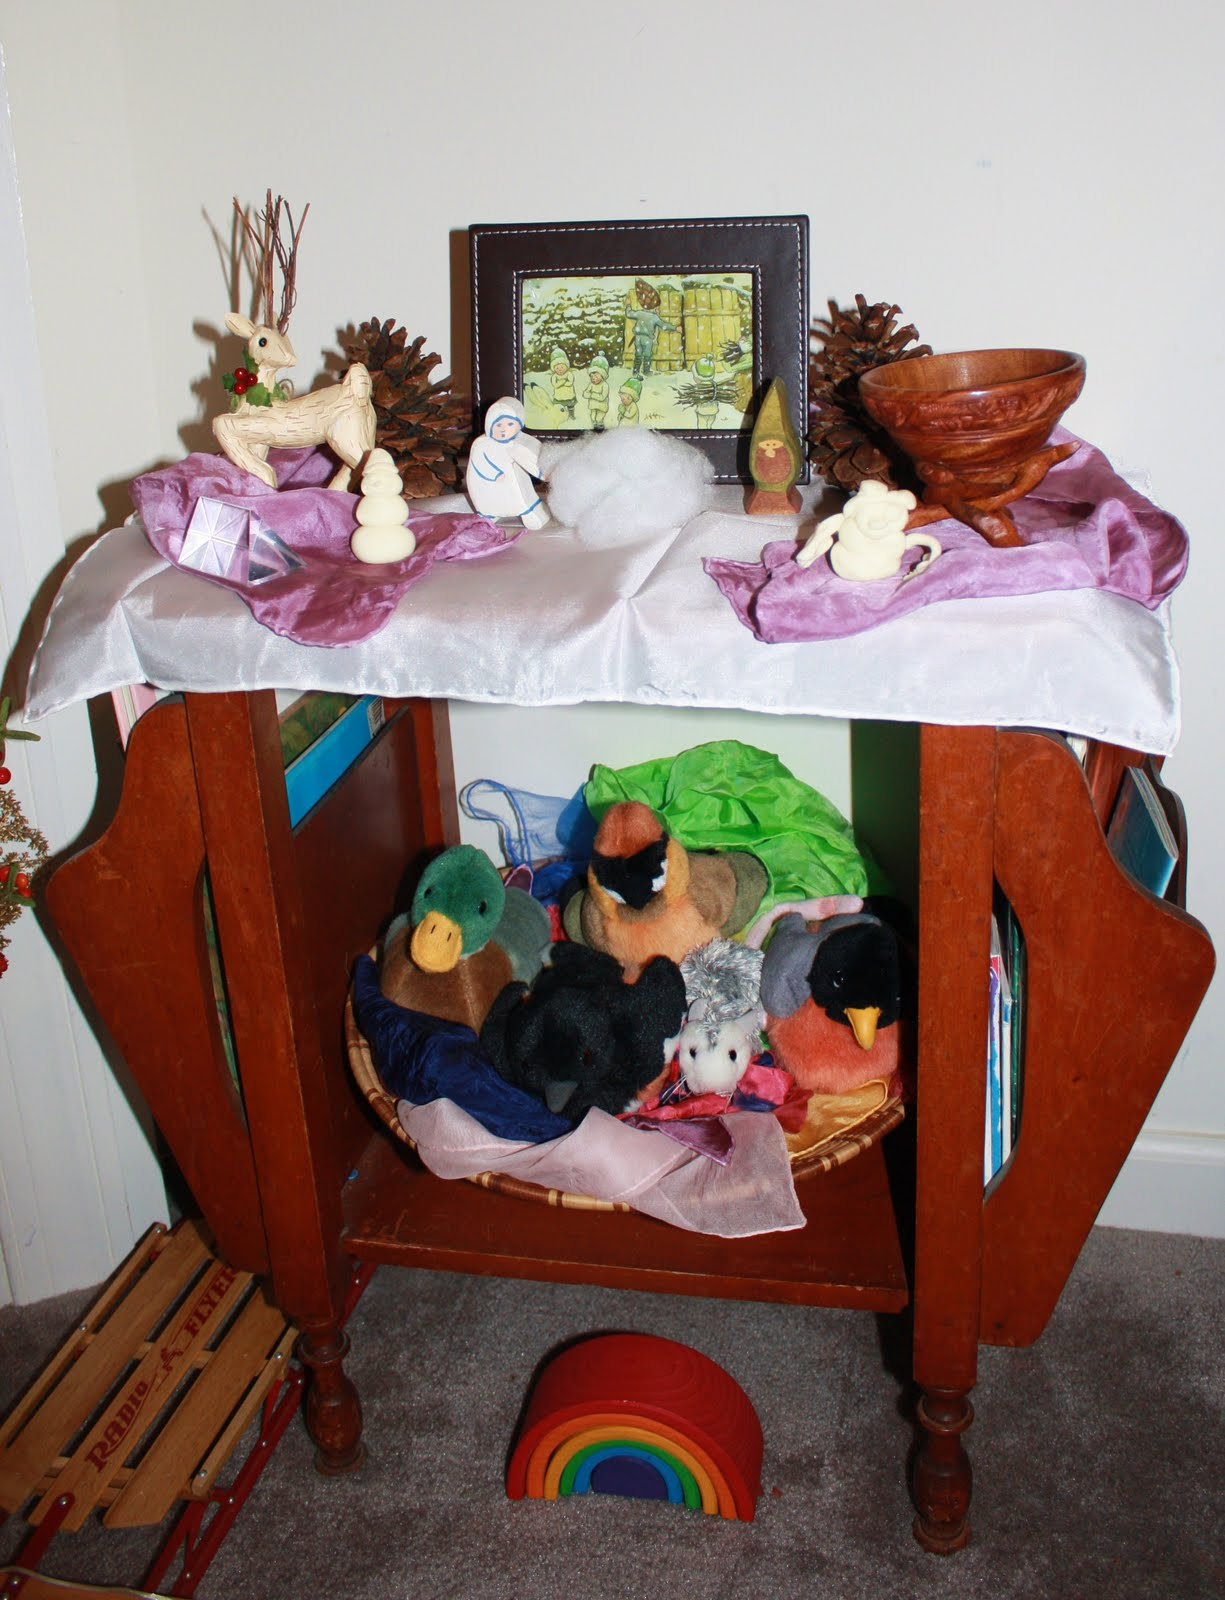 Winter nature table - Our Table Is Actually A Table Magazine Rack On The Bottom Shelf We Keep A Large Woven Basket Full Of Playsilks That Make Up A Nest For Our Plush Singing